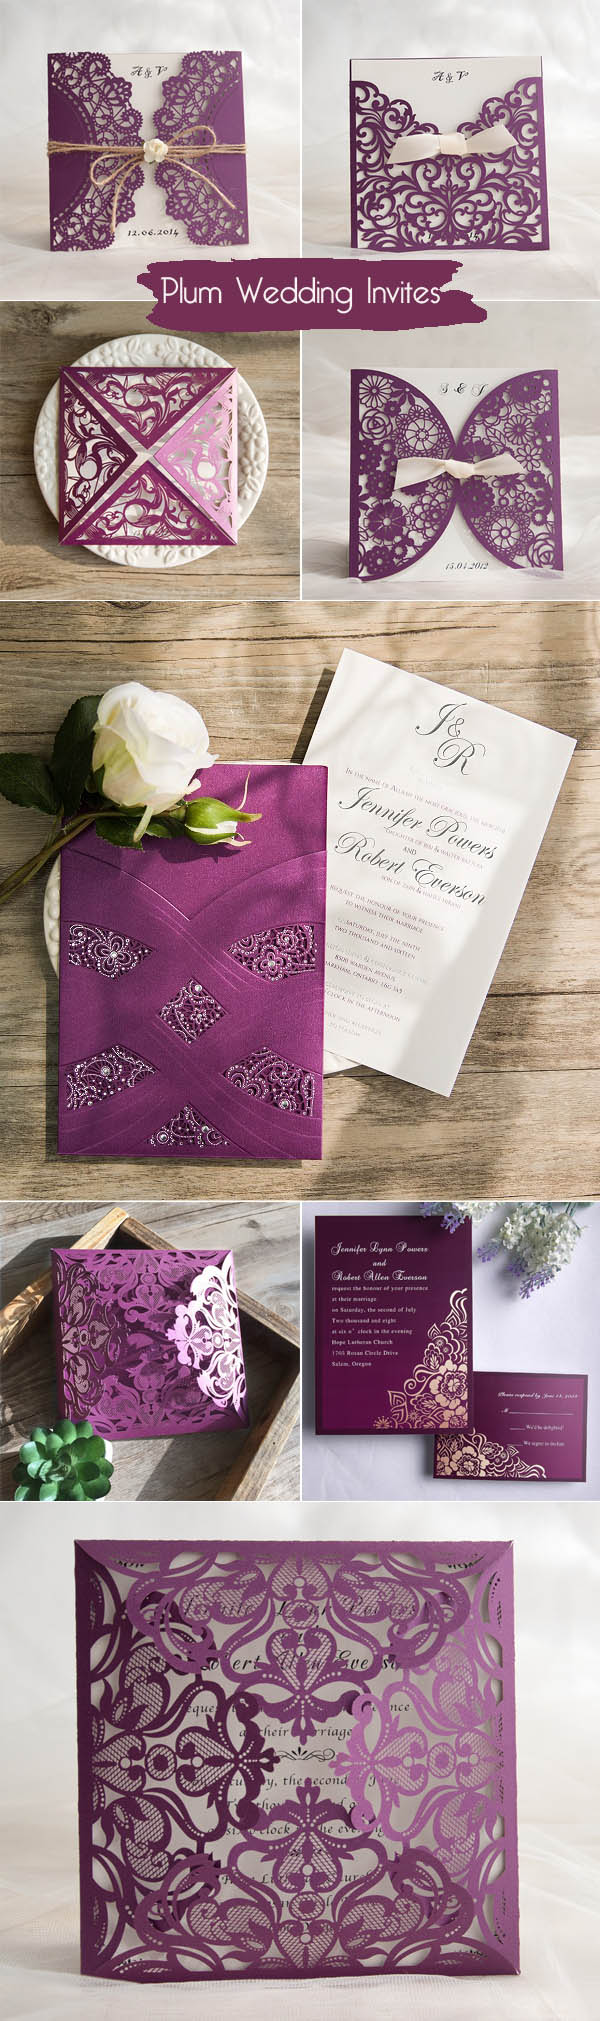 eight most popular plum purple wedding invitations from Elegant Wedding Invites